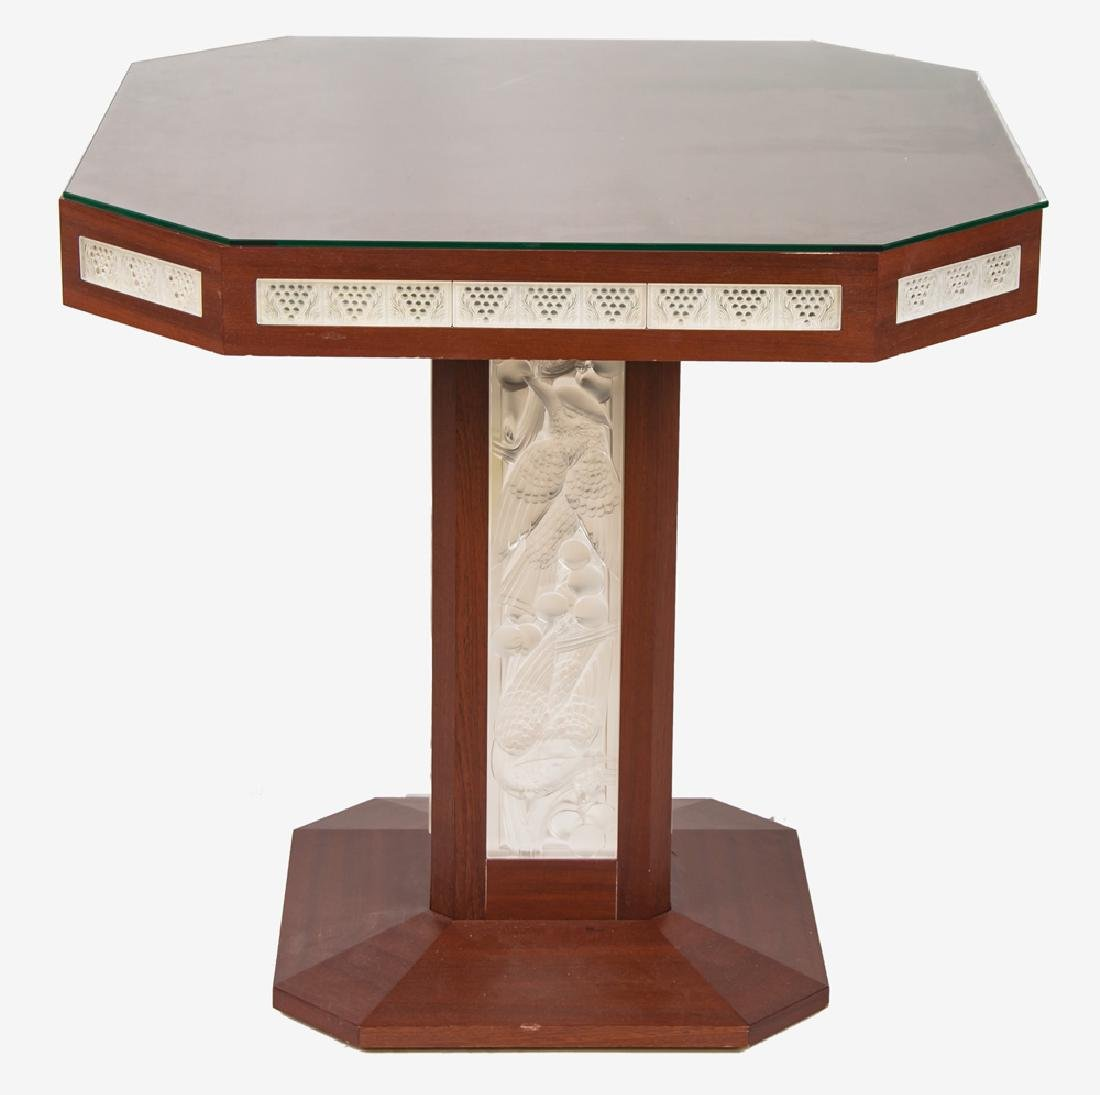 LALIQUE GLASS PANEL INSET GAME TABLE